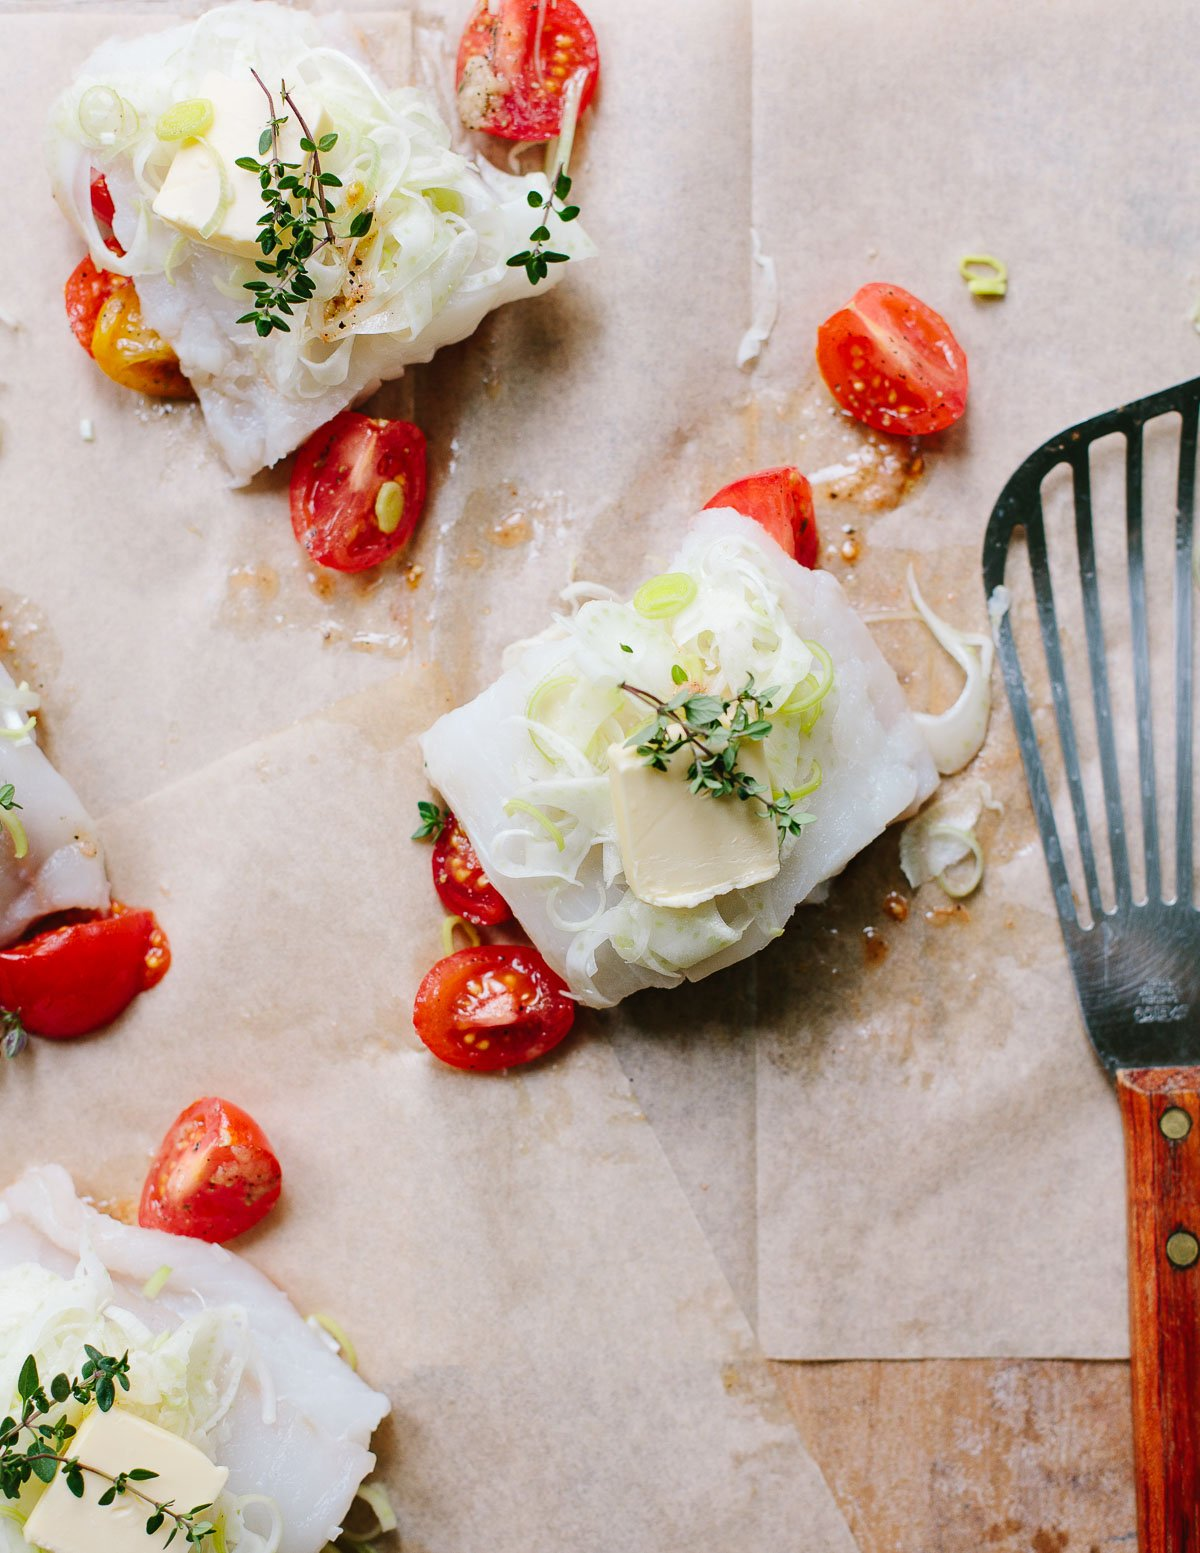 White cod fish fillets on brown parchment paper with sliced fennel bulb, cherry tomatoes, olive oil and thyme herb sprigs.